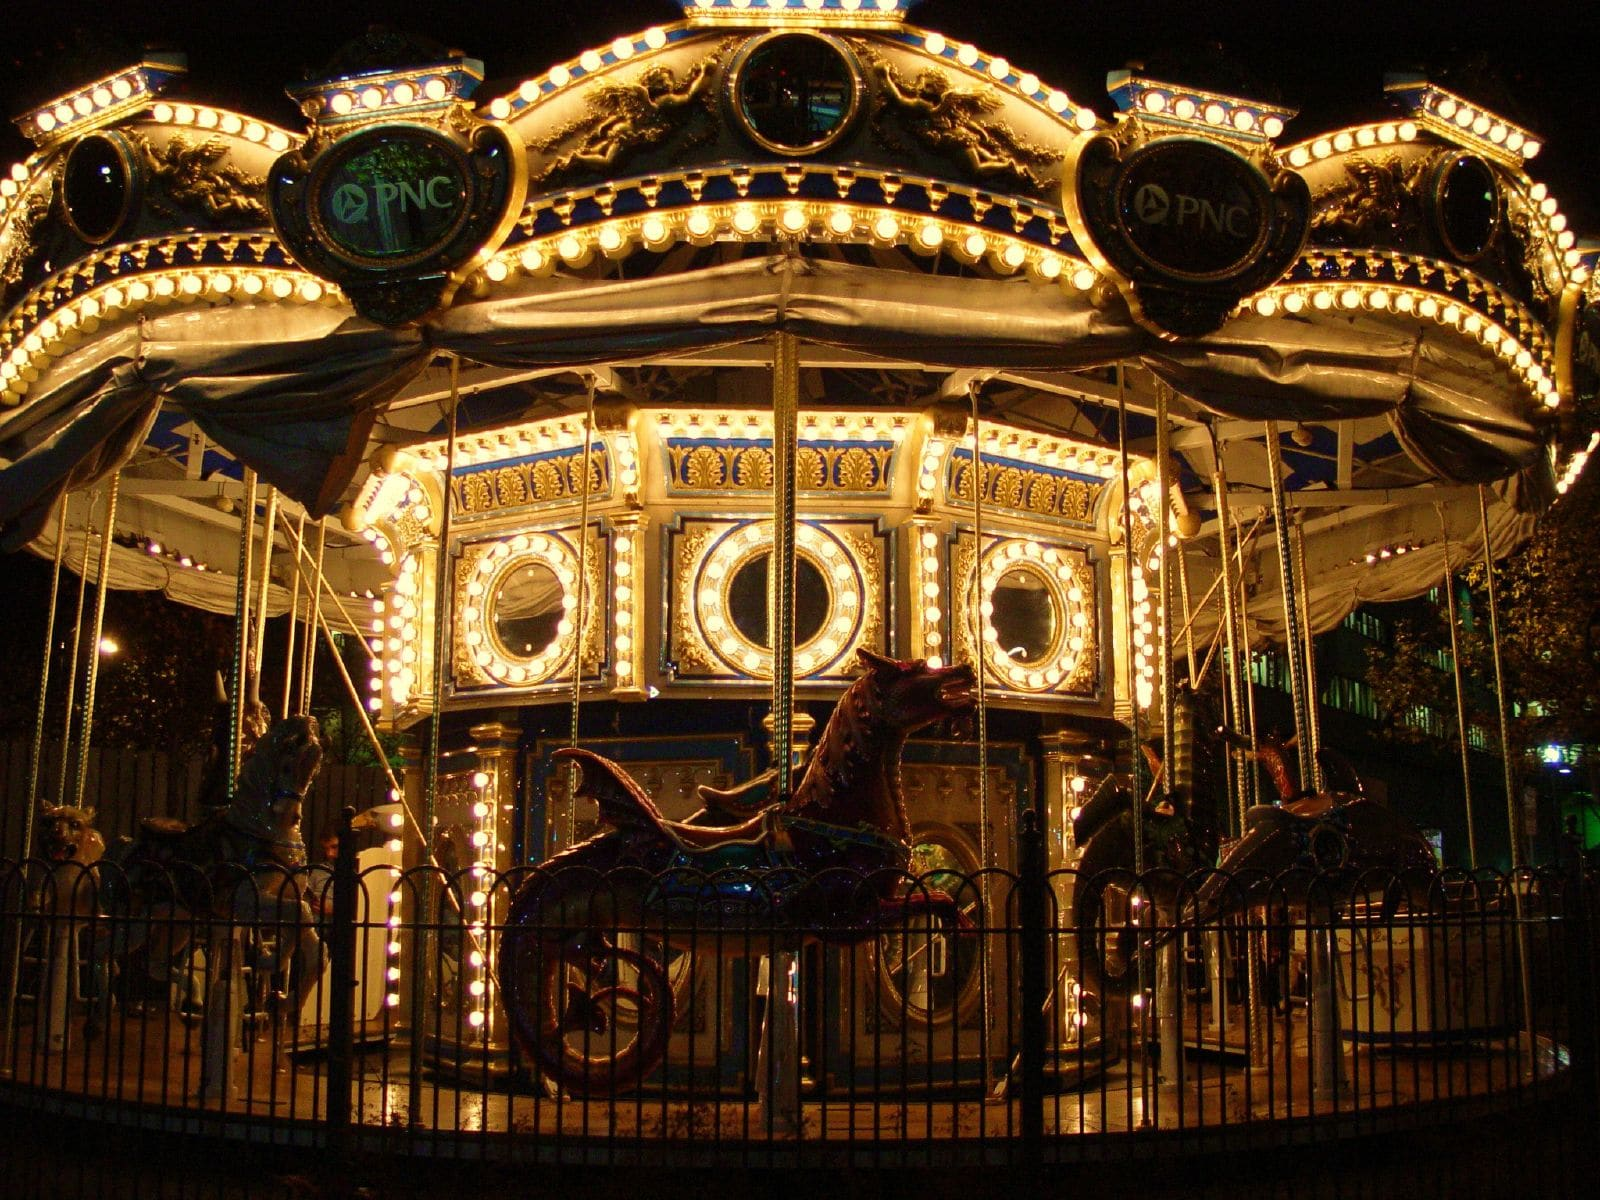 The carousel lit up at night in Schenley Plaza